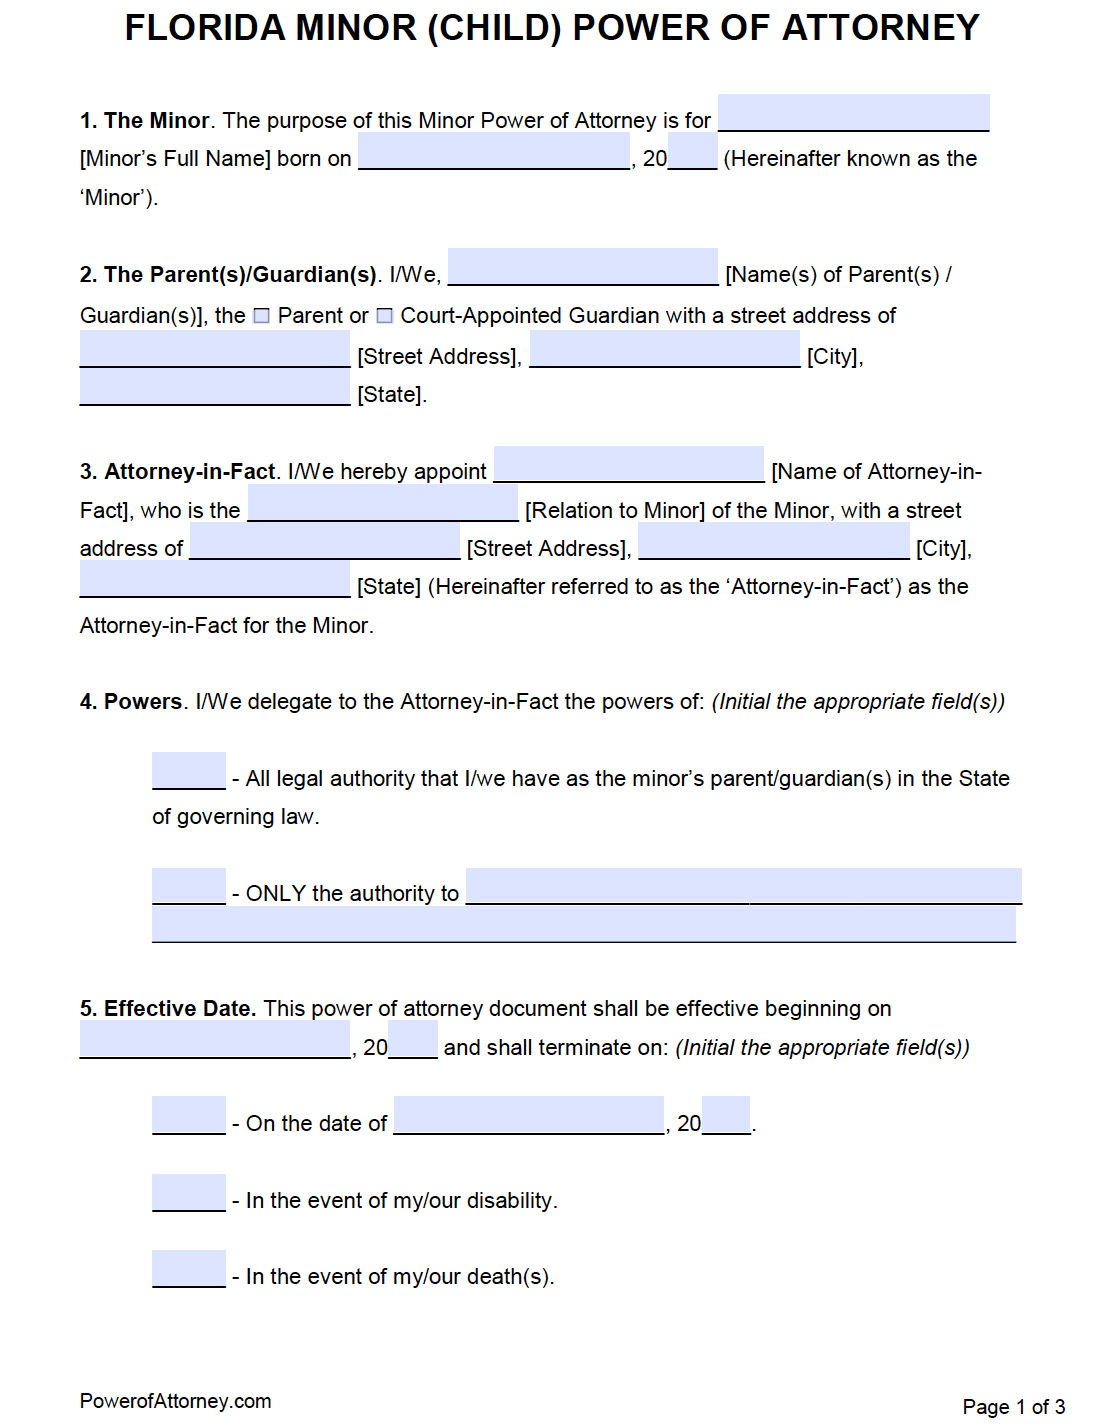 power of attorney form florida  Free Minor (Child) Power of Attorney Florida Form – PDF – Word